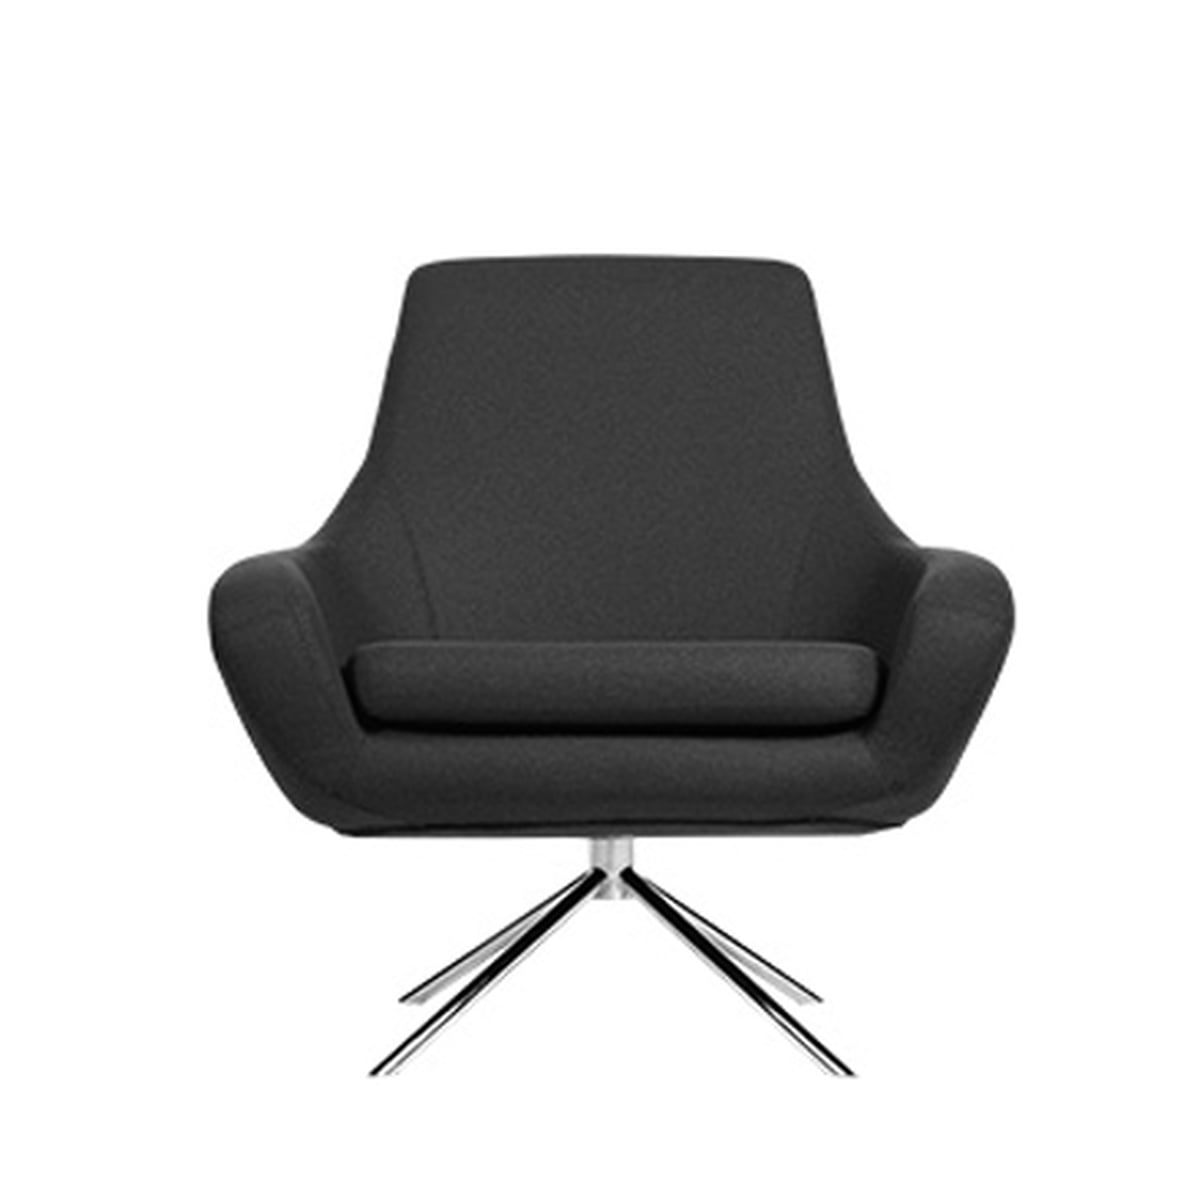 The Noomi Lounge Armchair By Softline